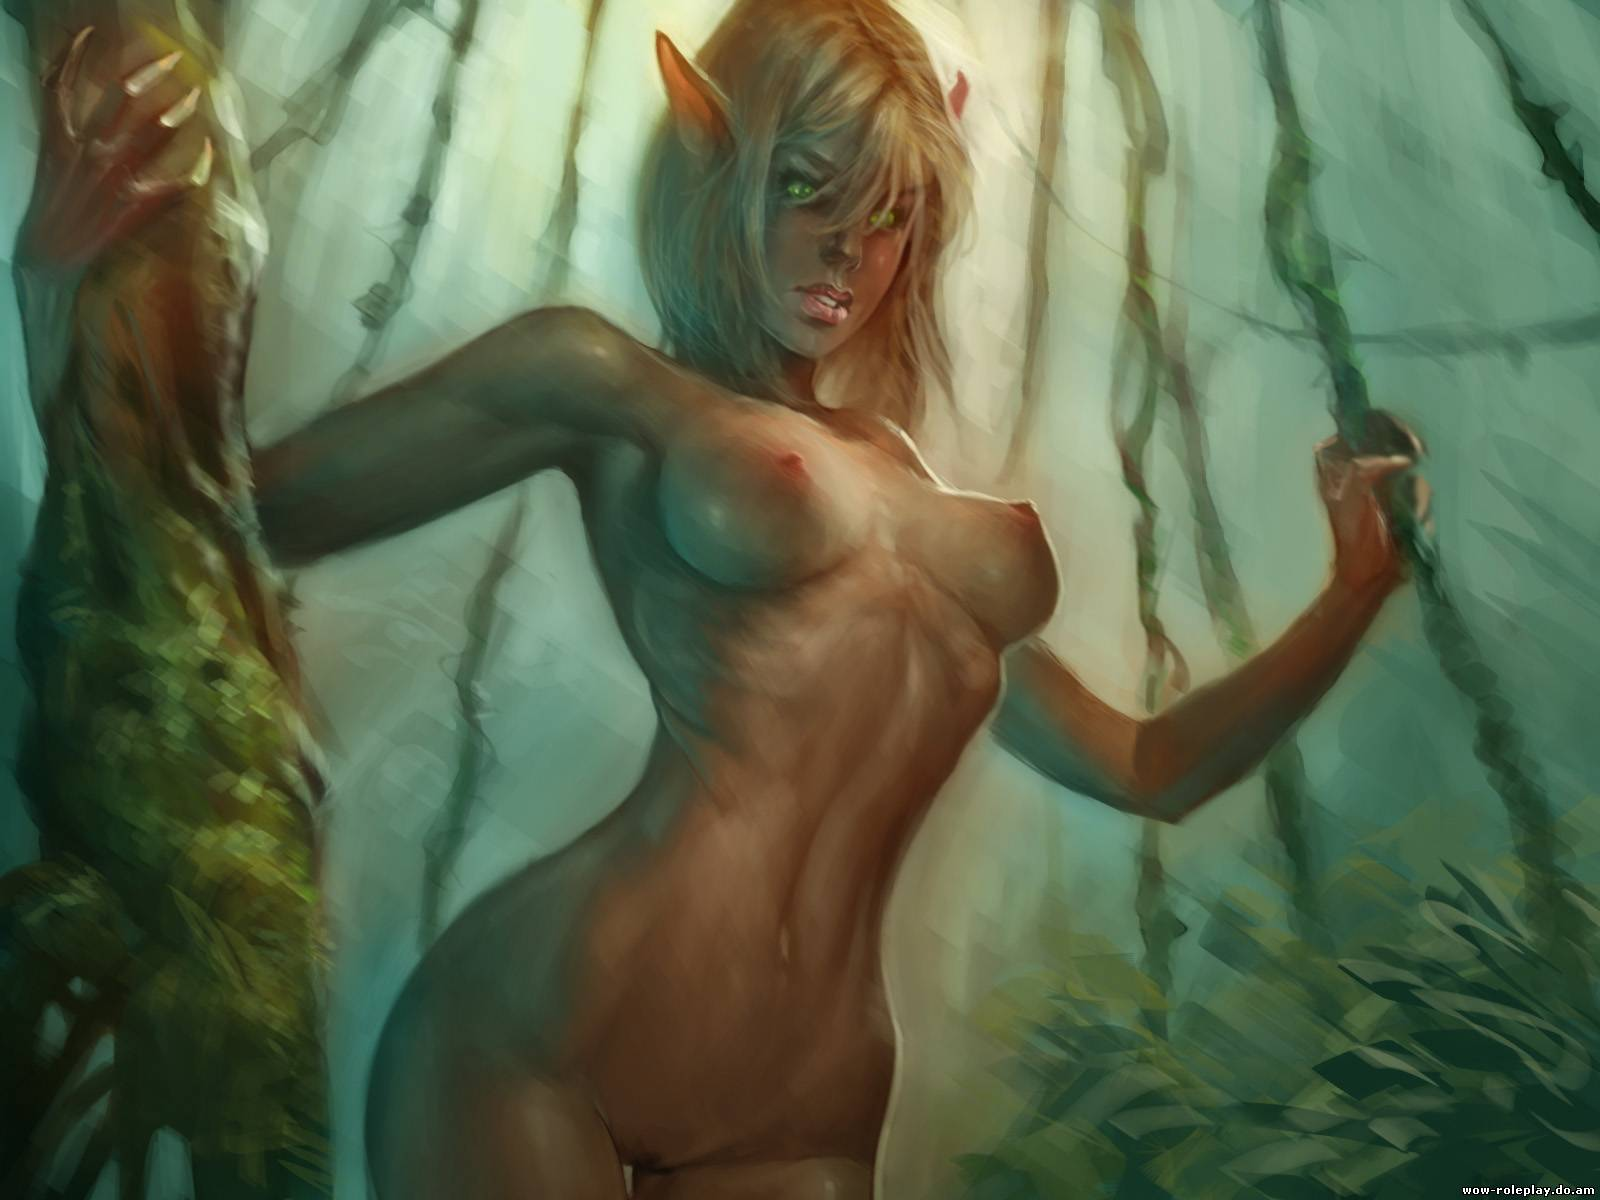 Girl naked fantasy art hentai tube